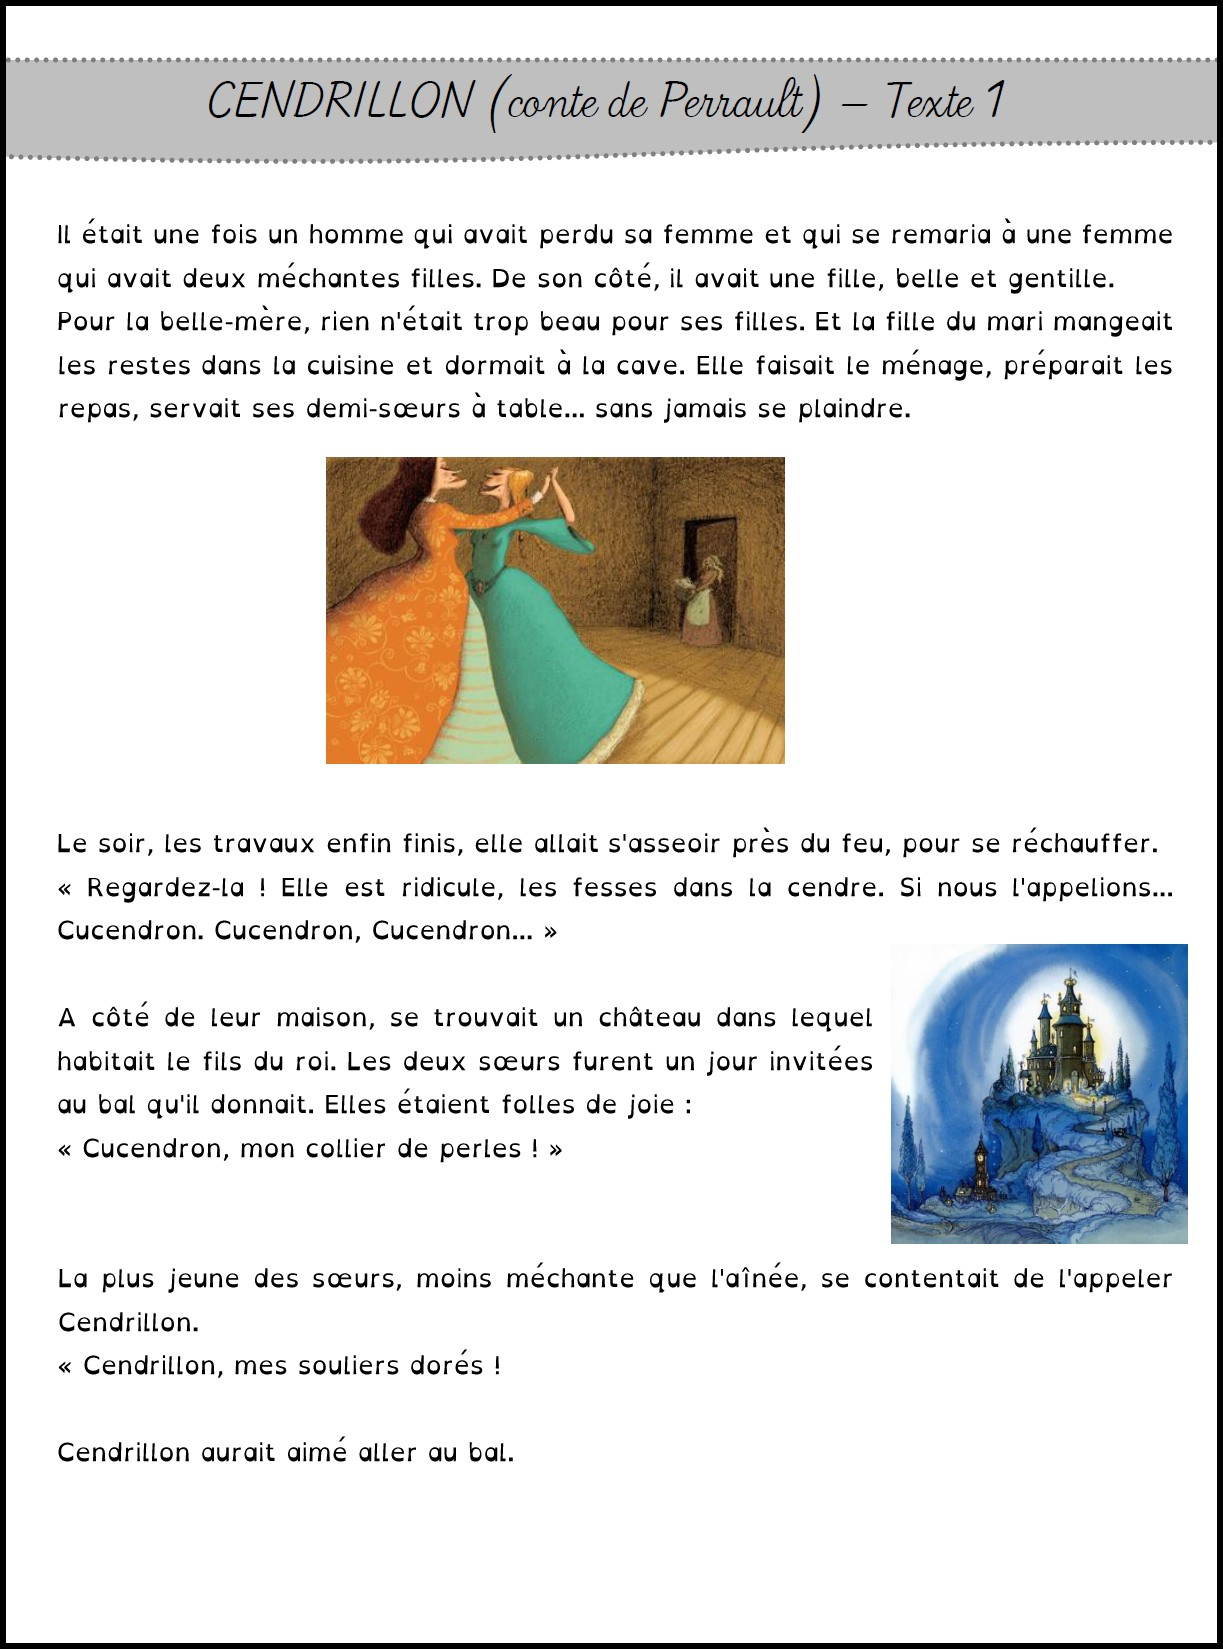 image tapuscrit confirmes cendrillon